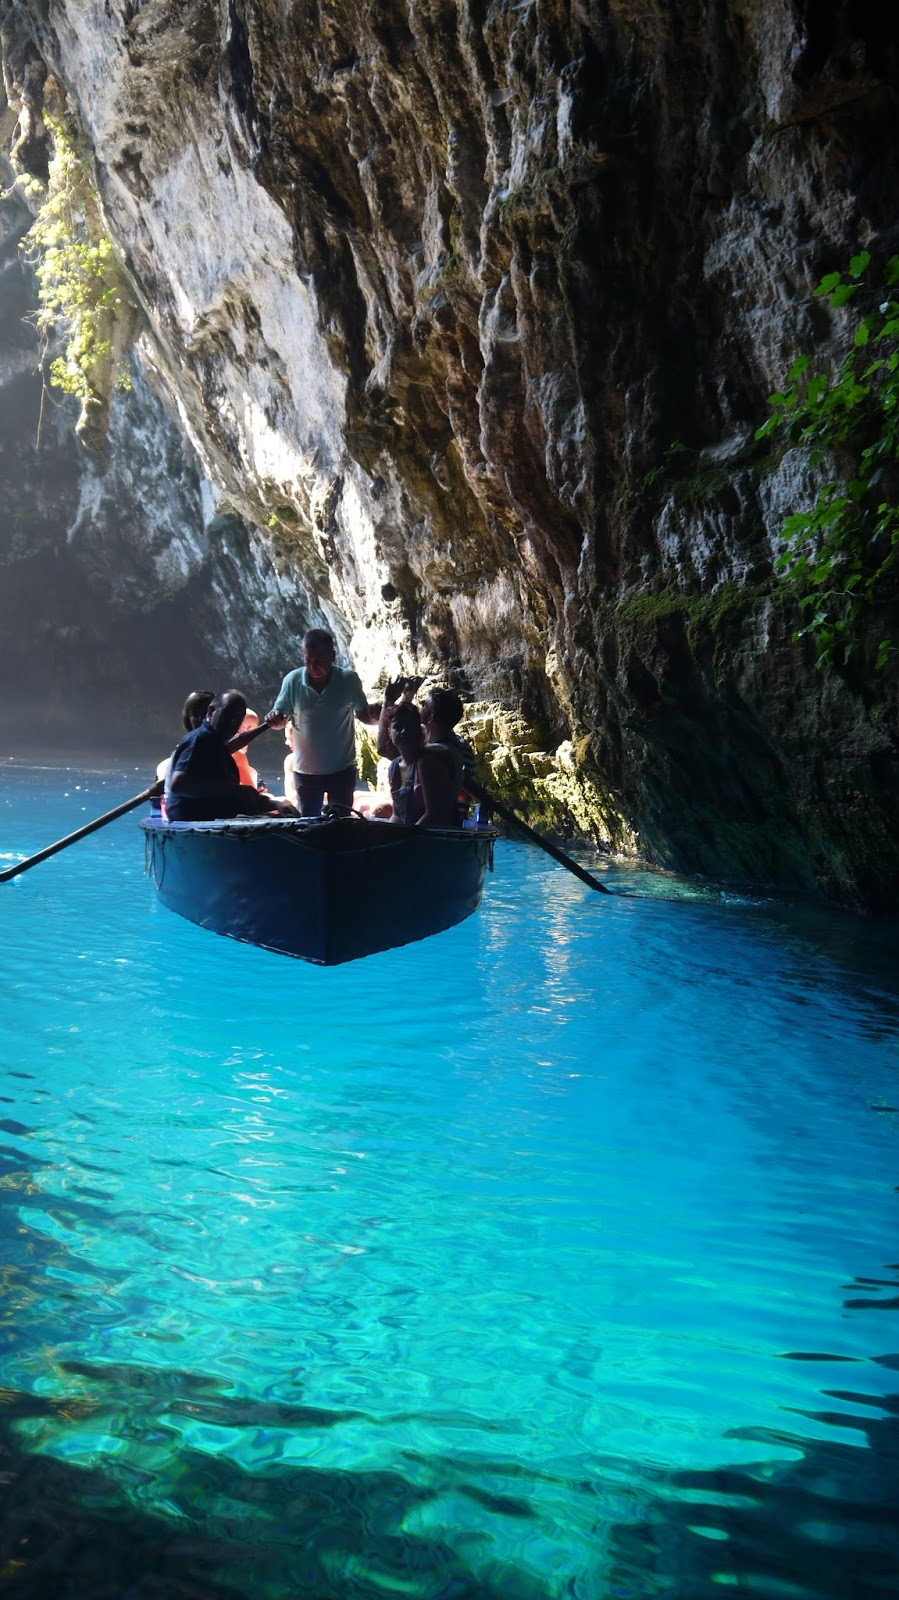 *PIN FOR LATER* Visiting the Magical Melissani Caves & Lake on Kefalonia in the Greek Islands! Kefalonia is such a special island..